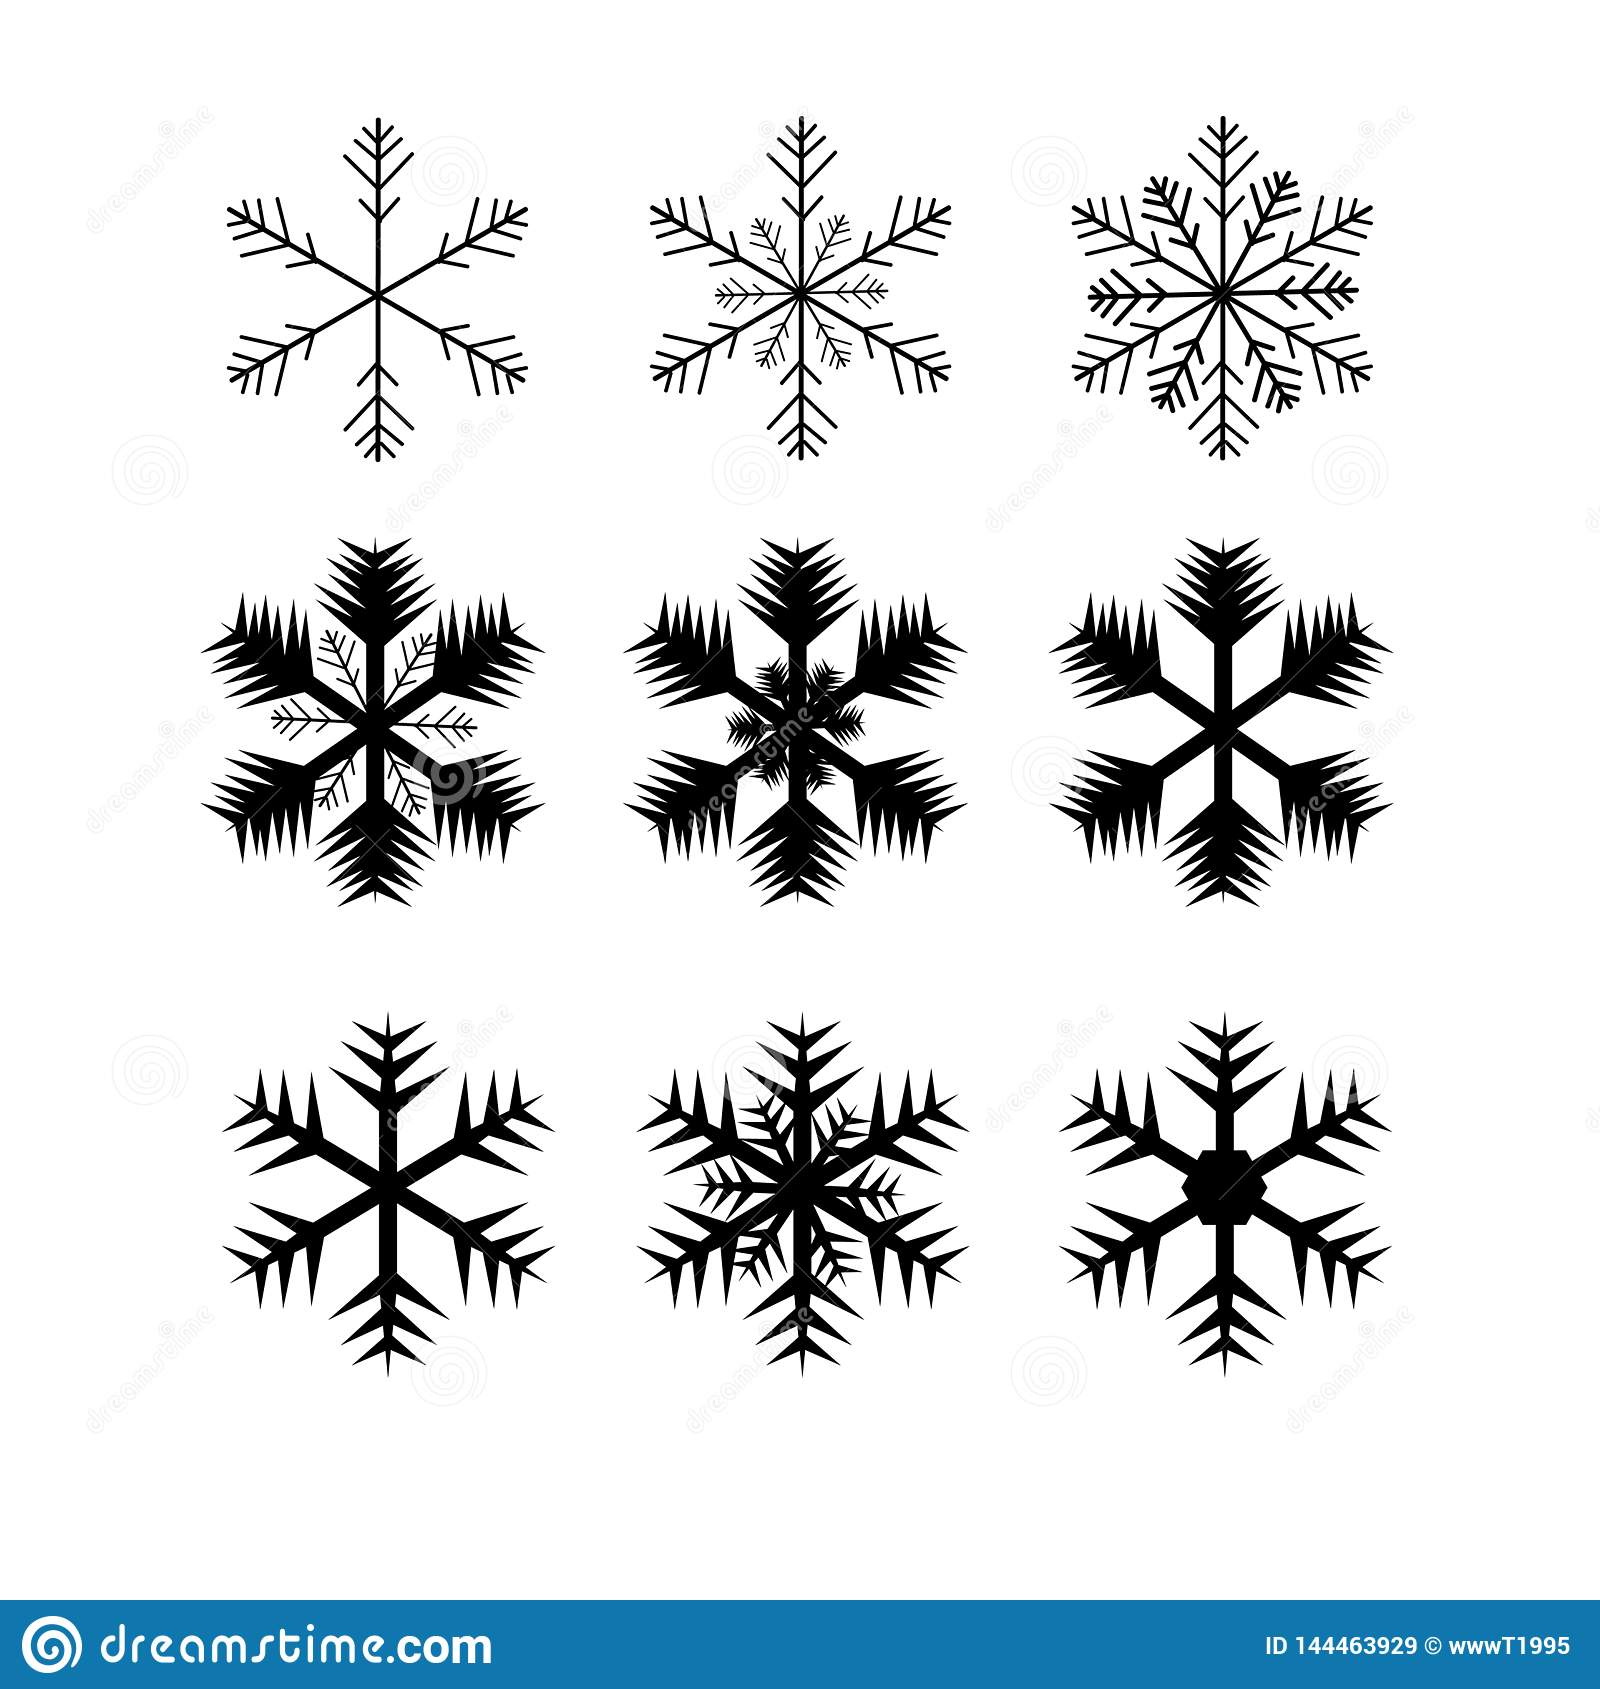 Web. Cute snowflakes collection isolated on gold background. Flat line snow icons, snow flakes silhouette. Nice element for christ